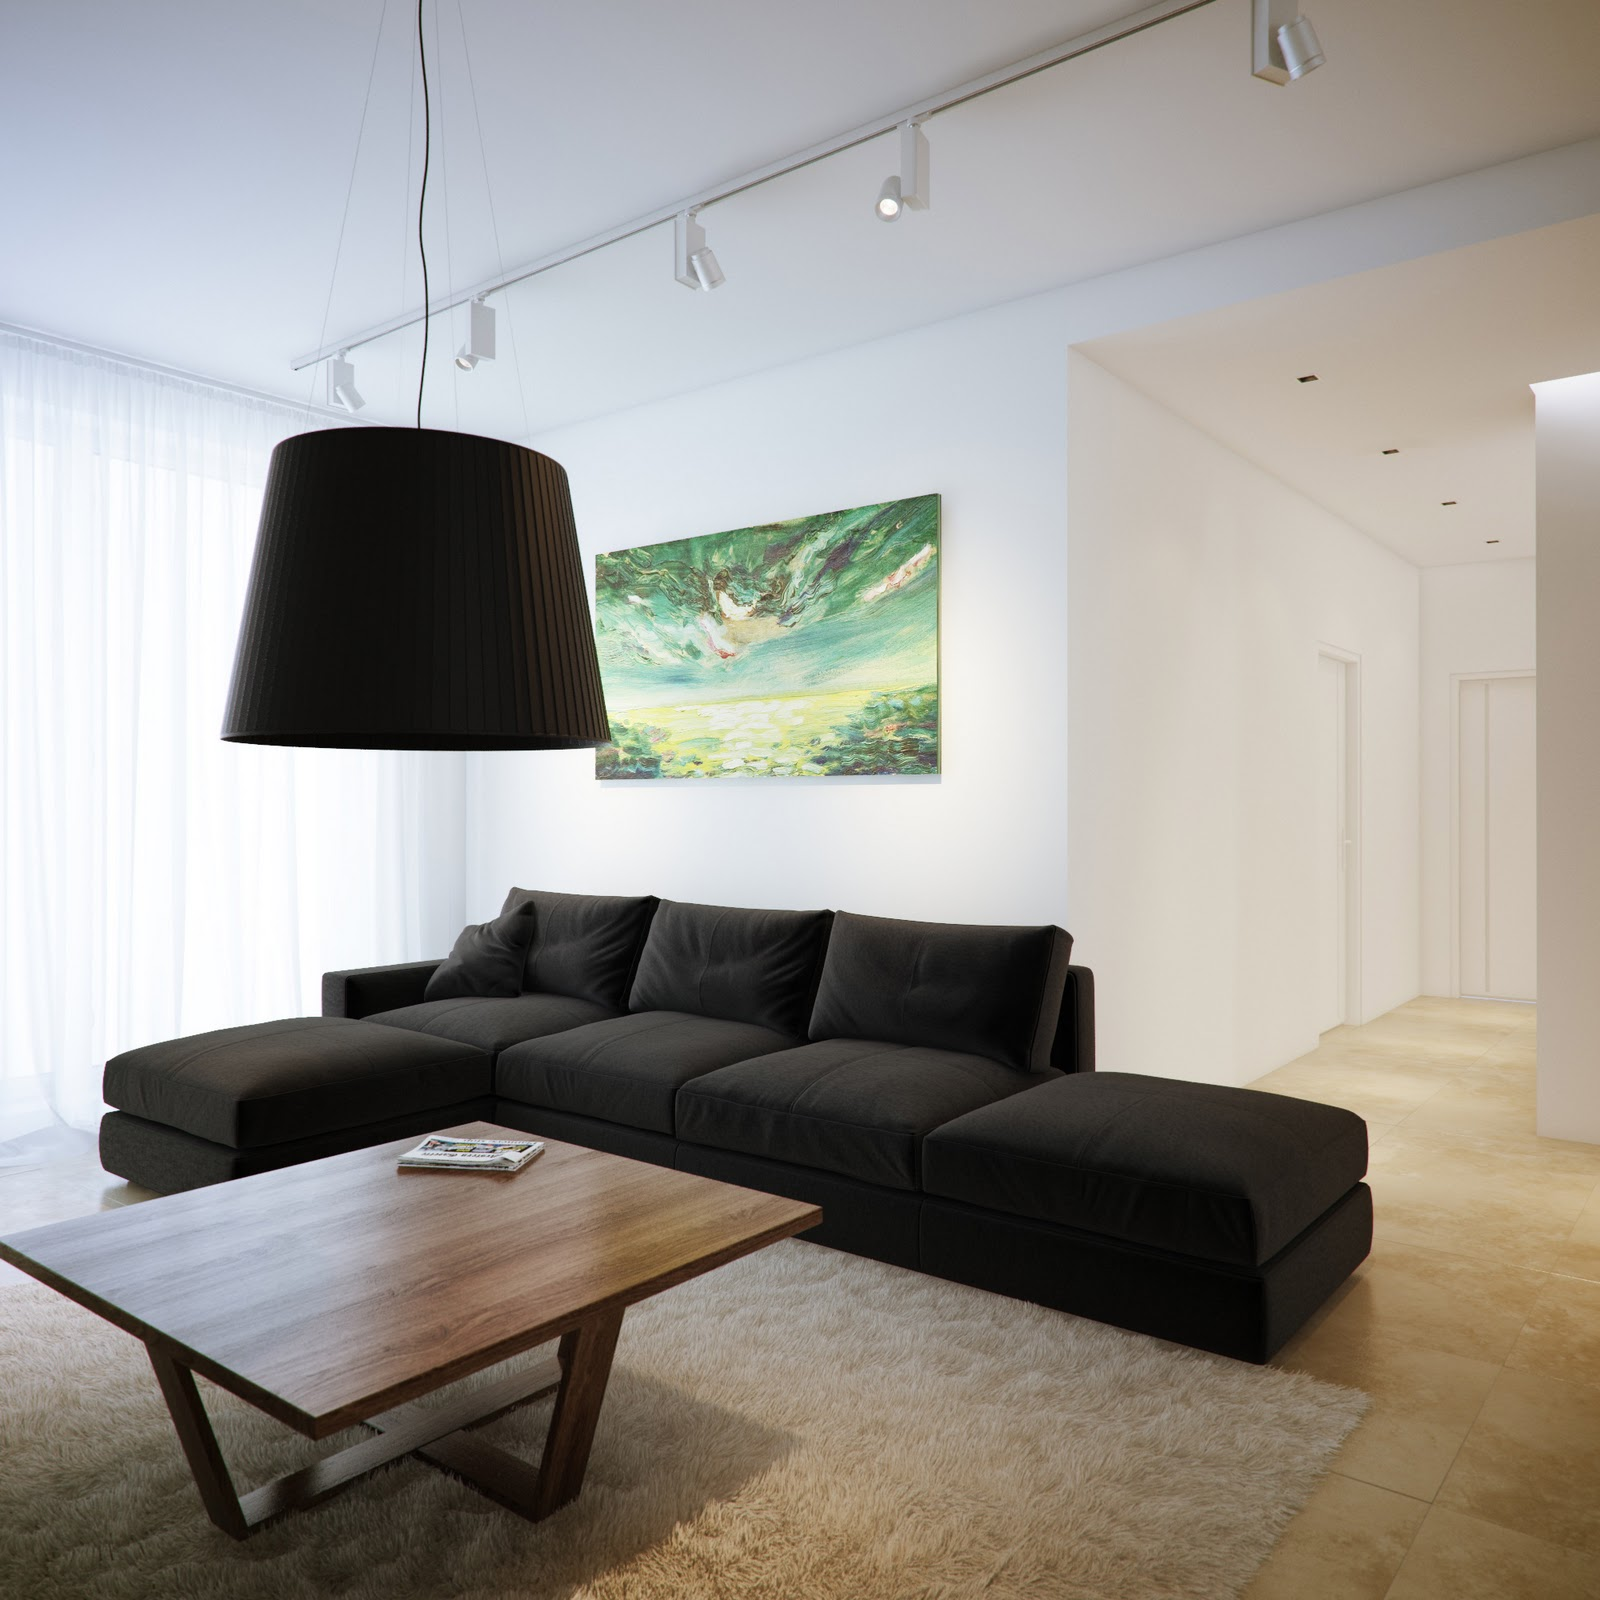 Living Room Lighting 20 Powerful Ideas To Improve Your: Modern Minimalist Black And White Lofts